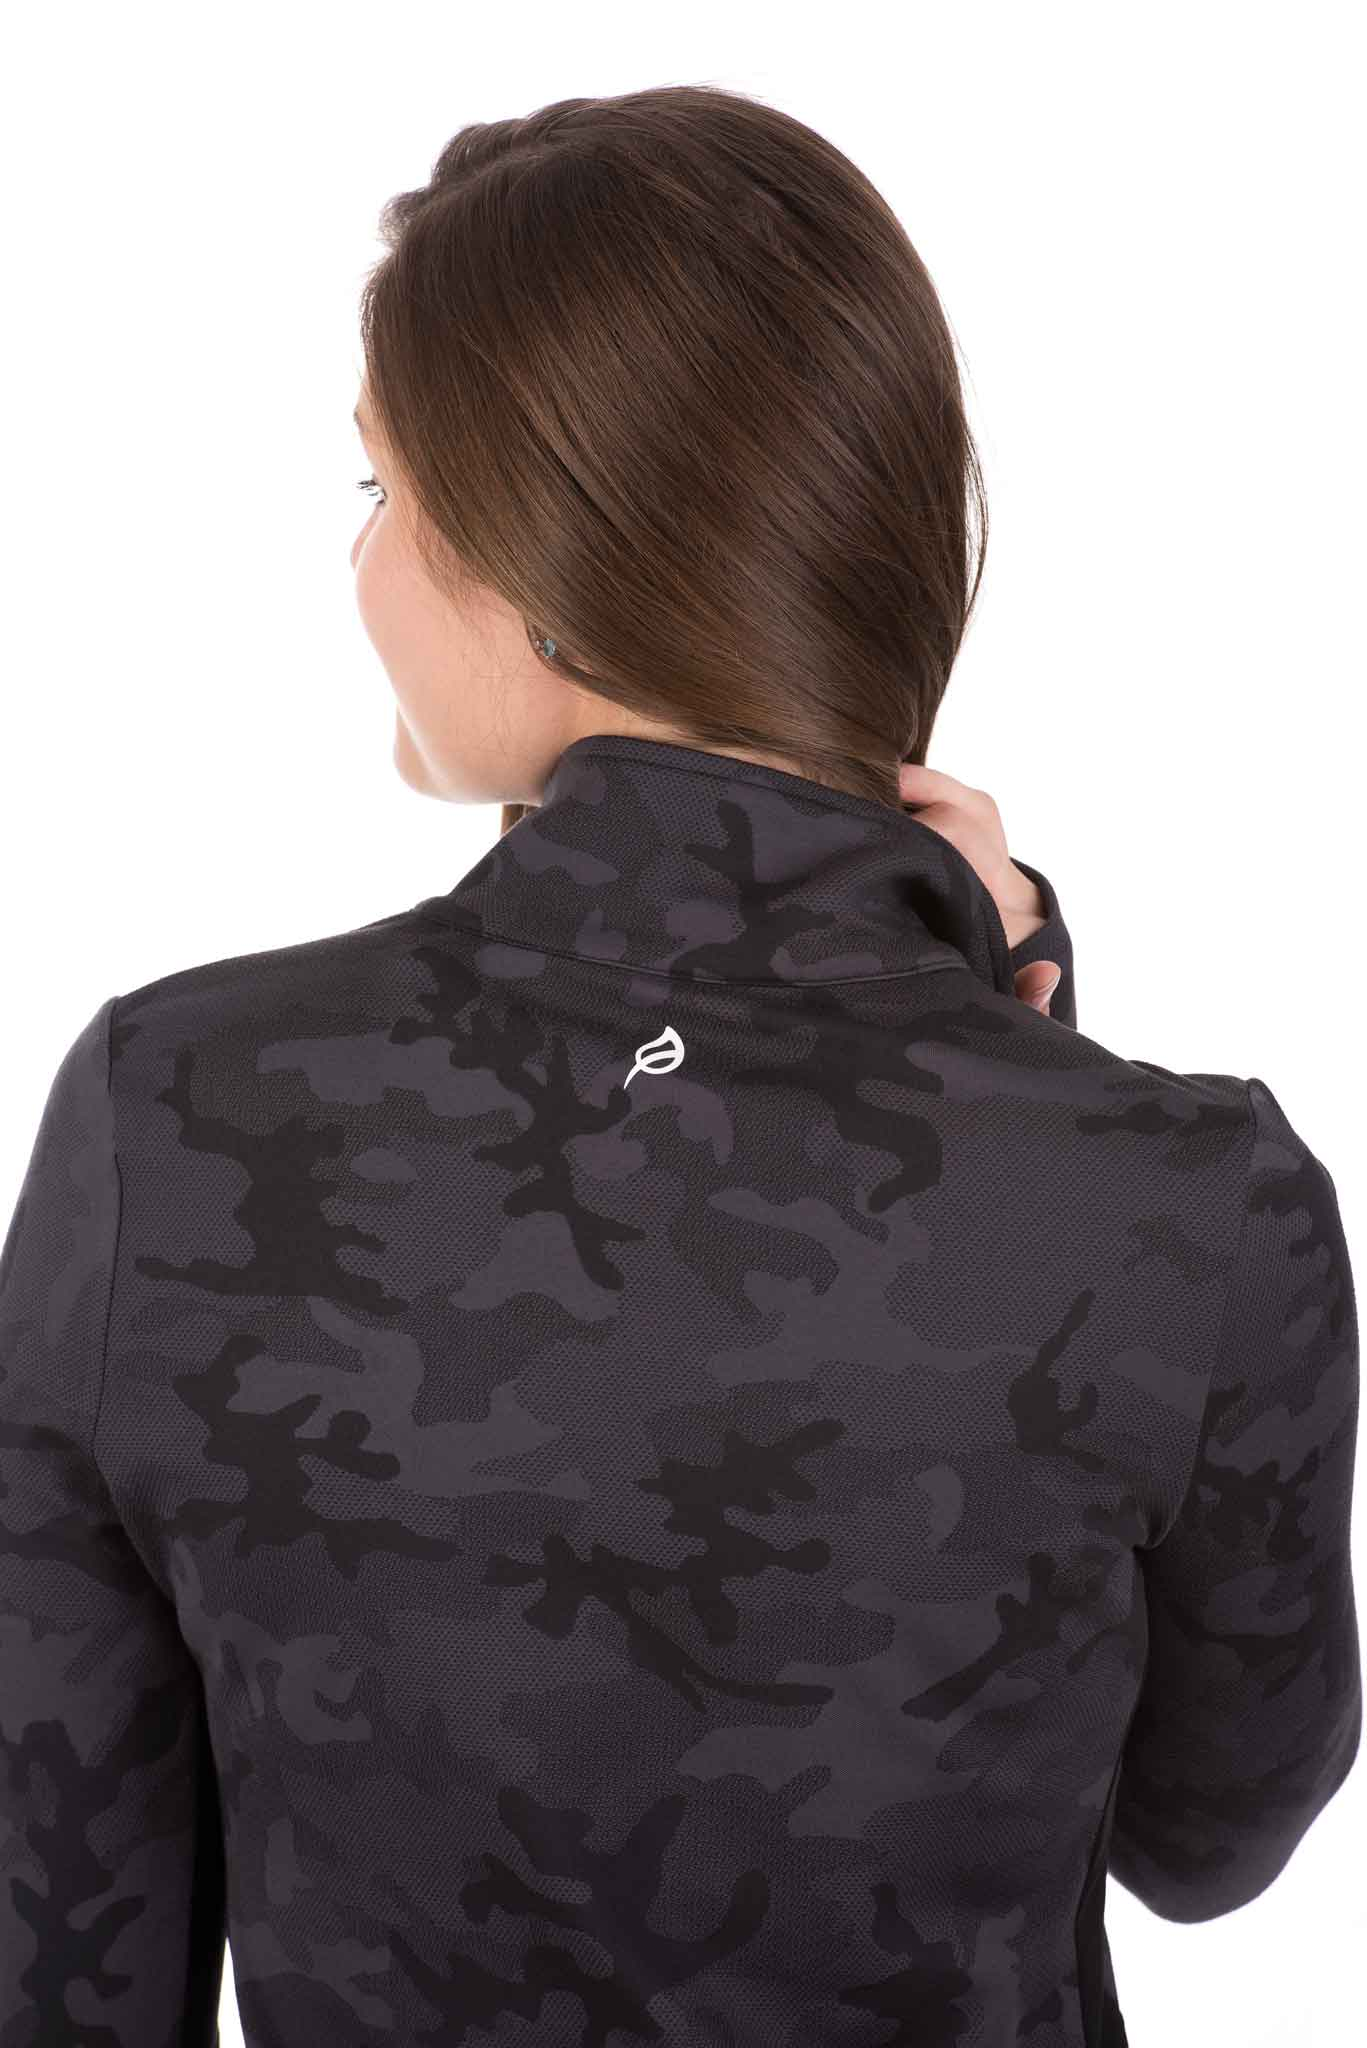 The Stealth Pullover - Camo